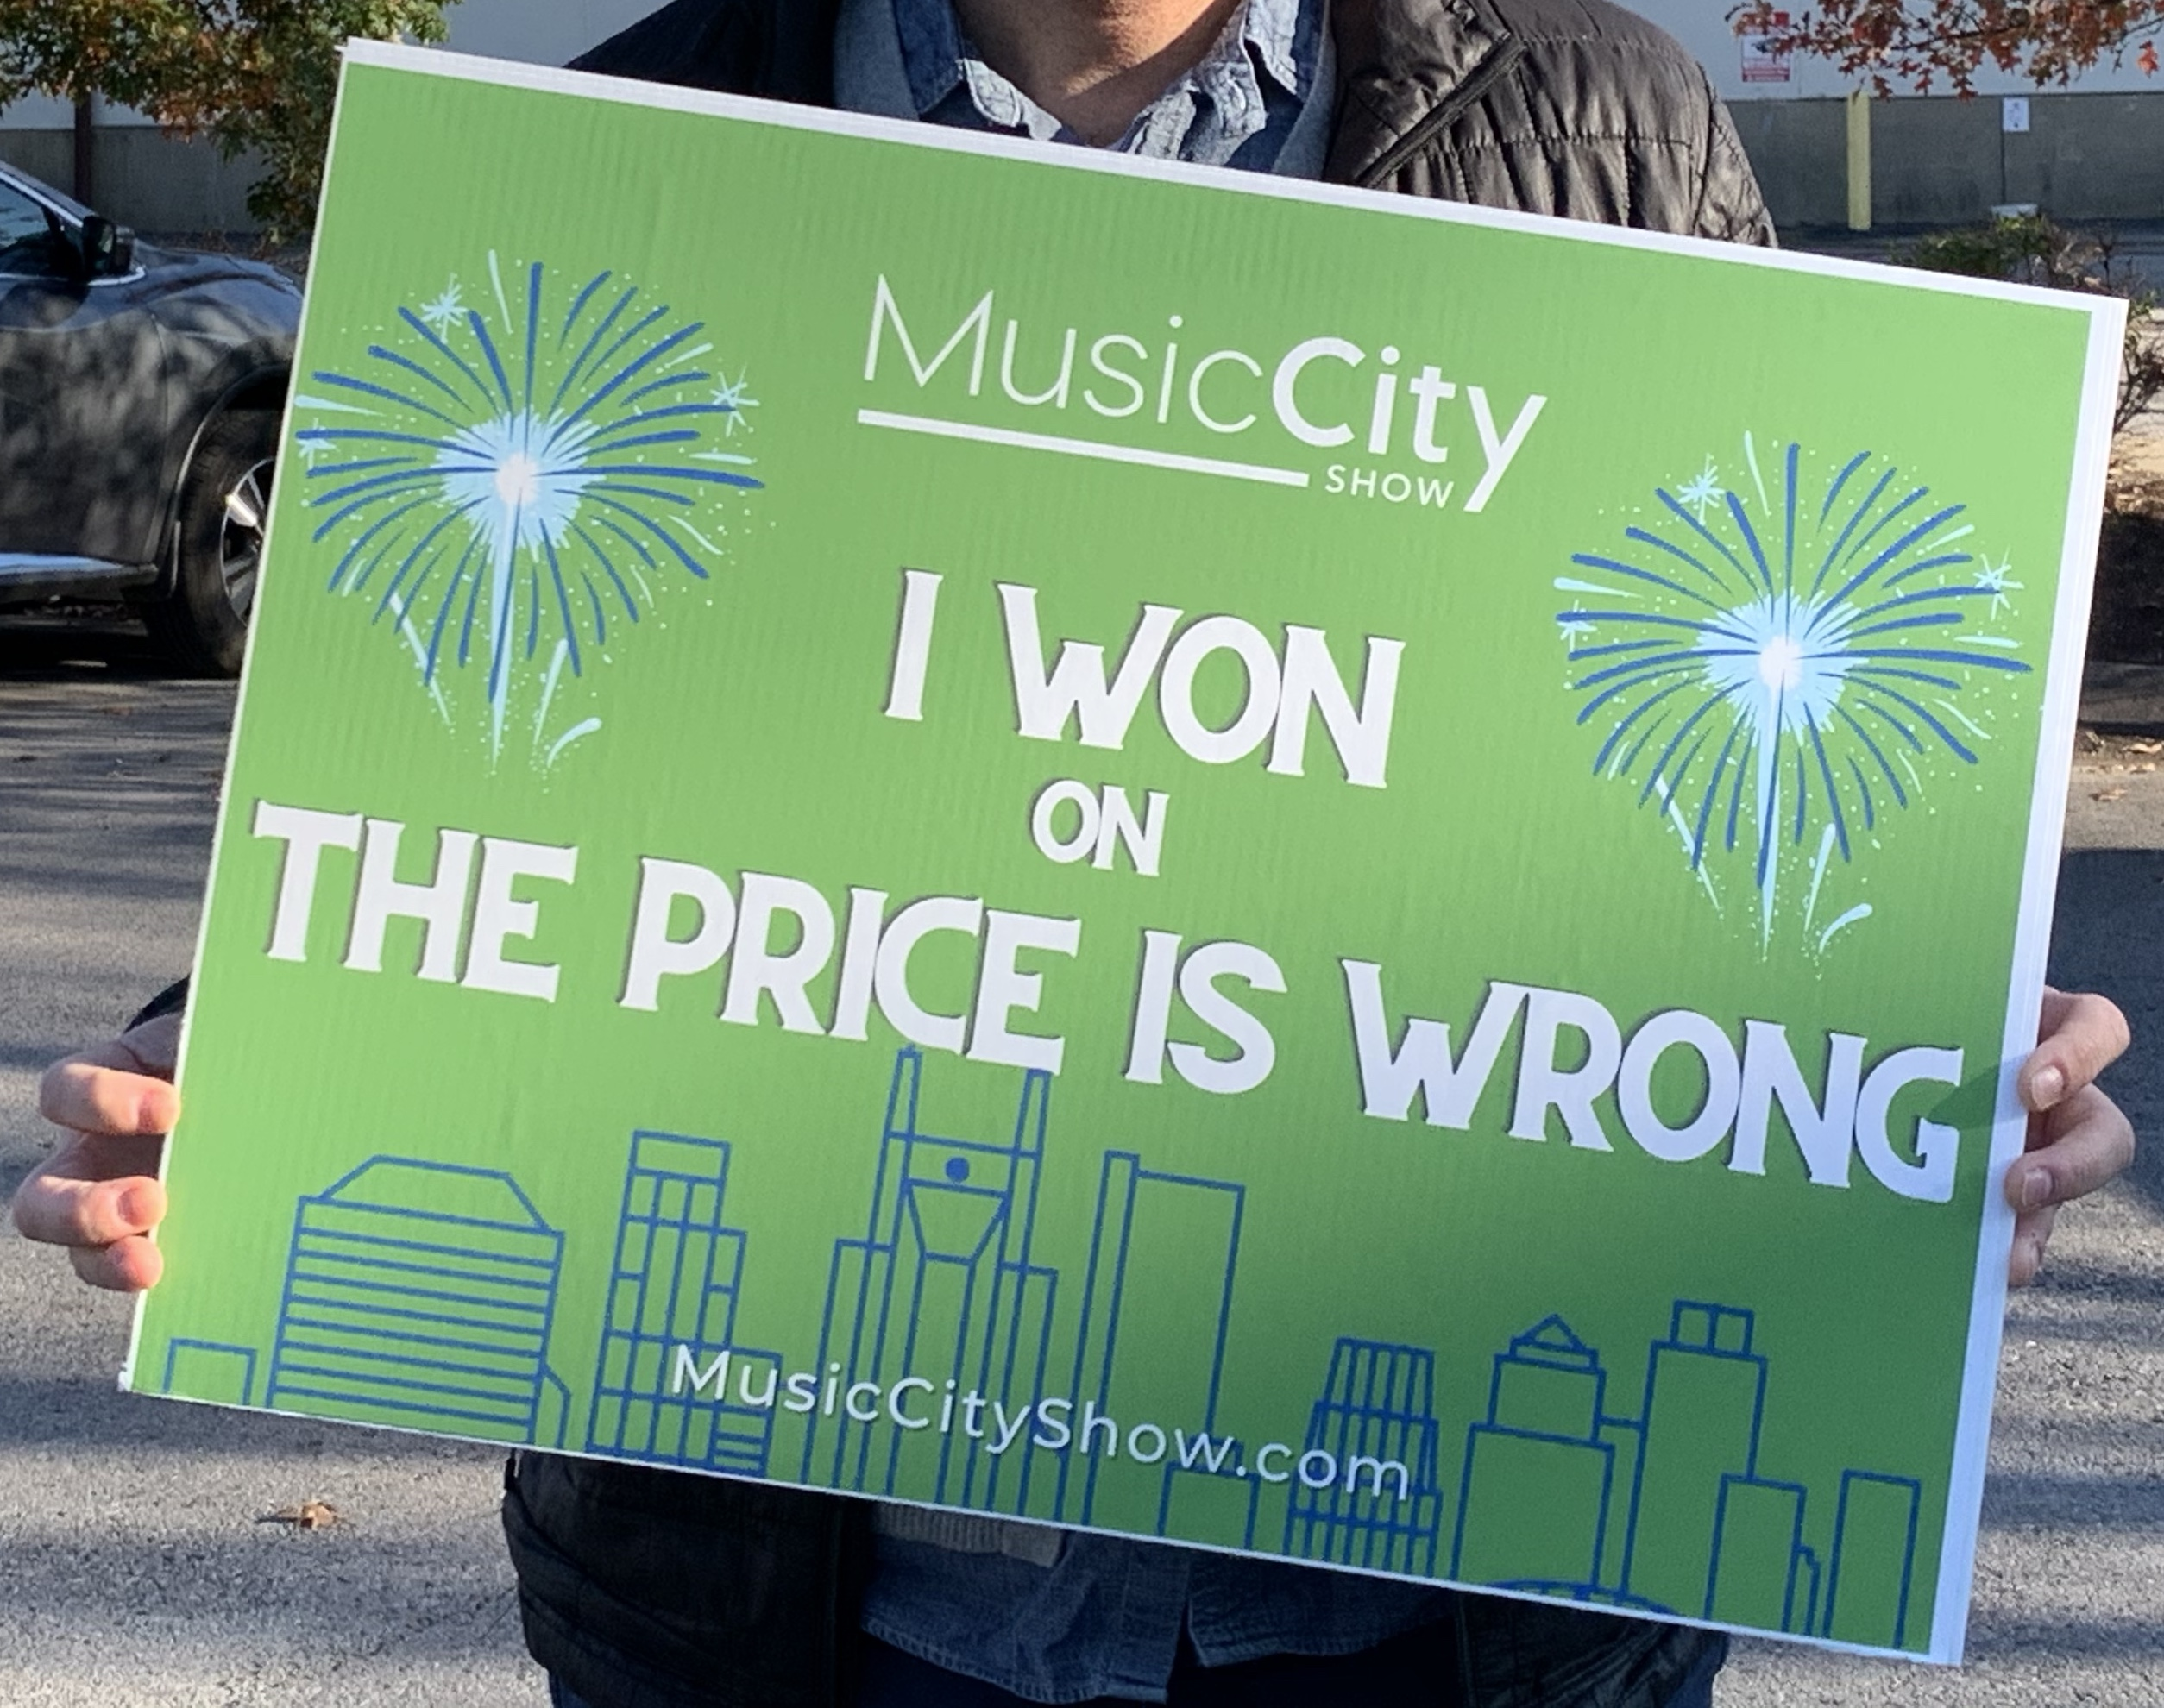 I won on The Price is Wrong